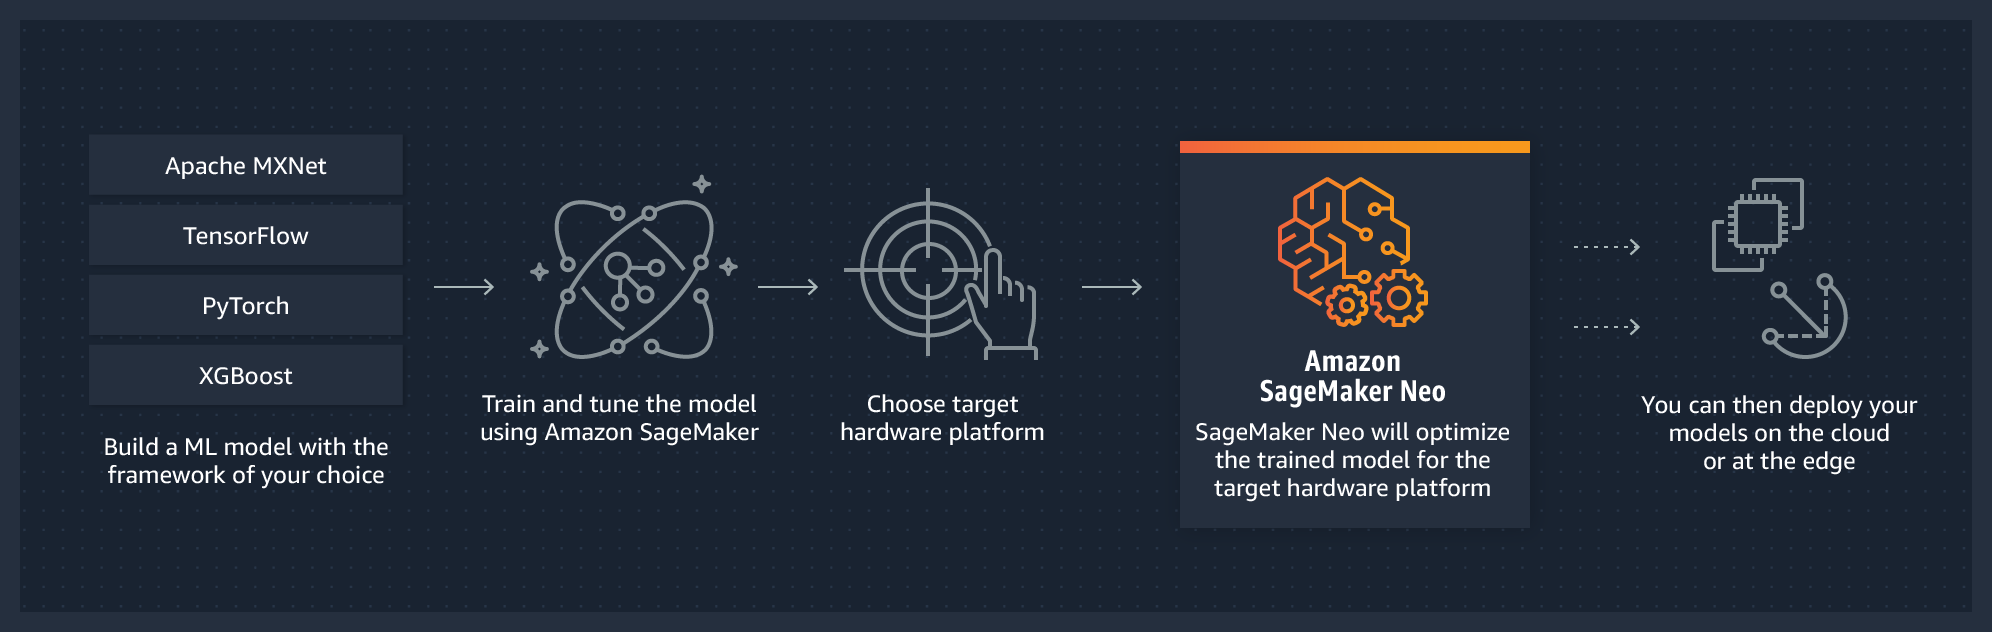 How Amazon SageMaker Neo works